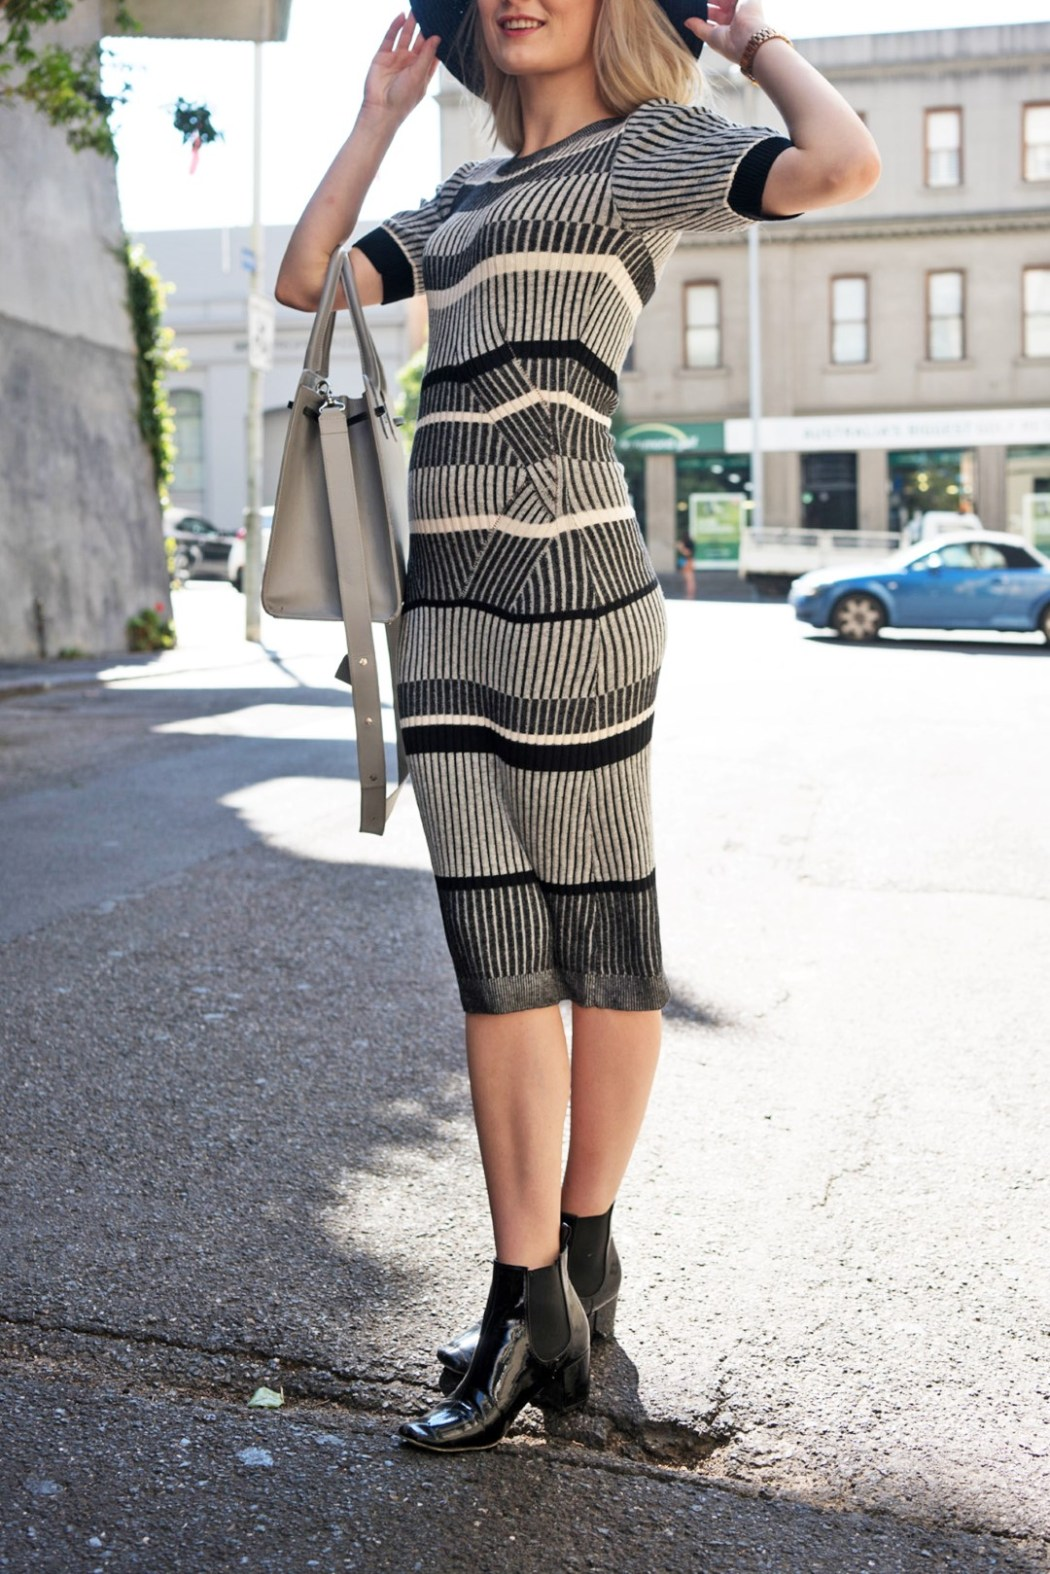 Kristen wears Lucid Label's Linear Bodycon Knit dress in Black and White.